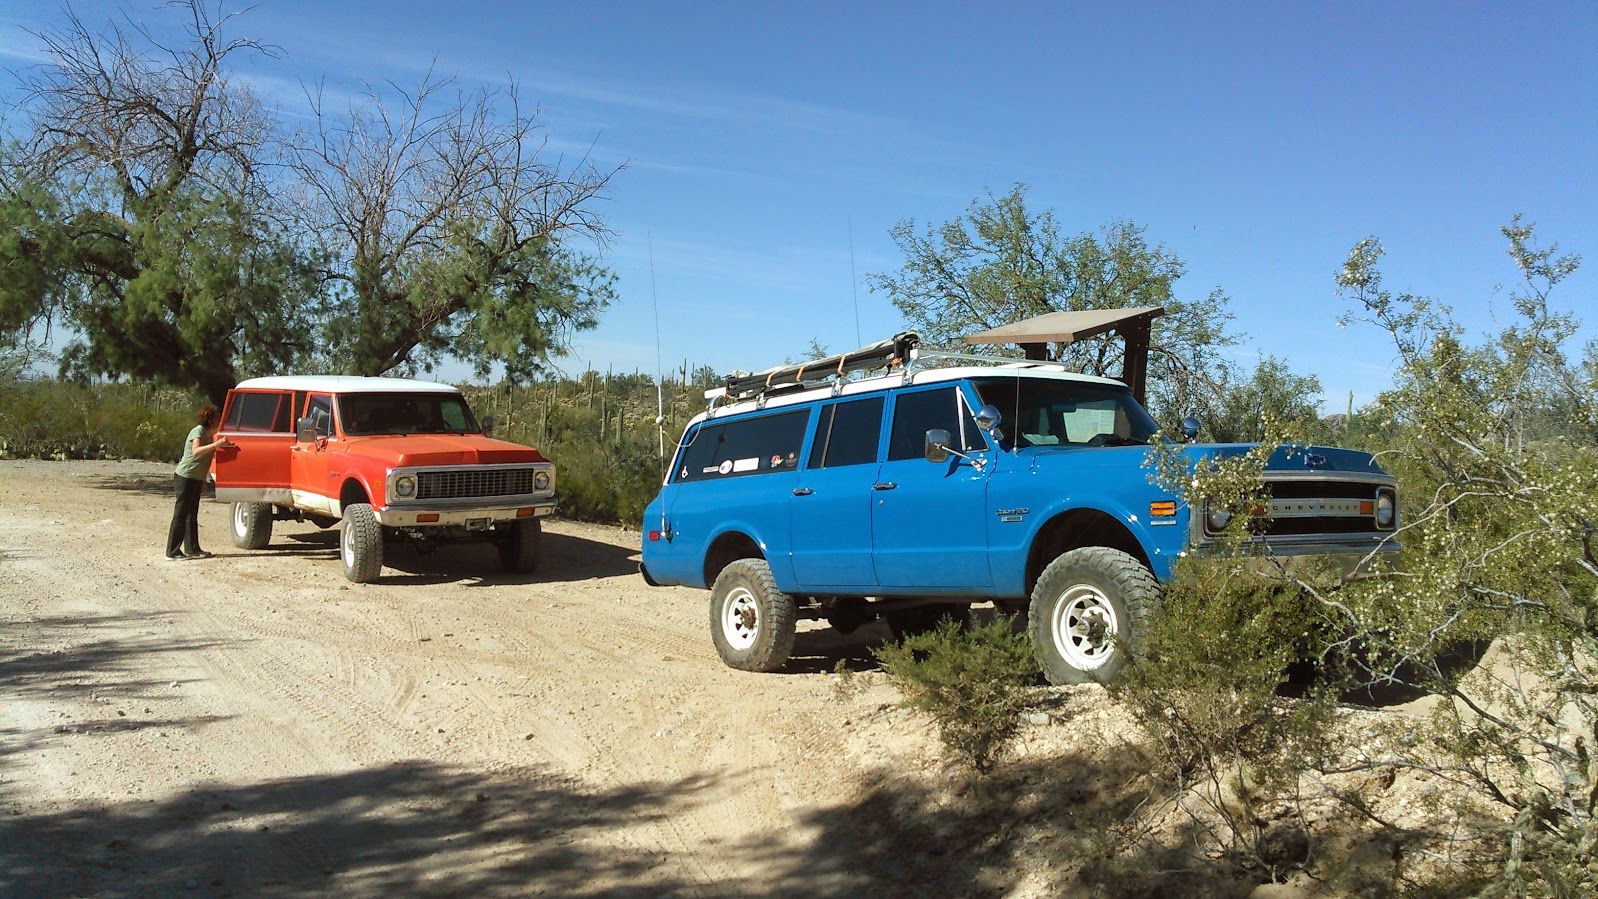 Considering Suburban over smaller 4x4   your experience